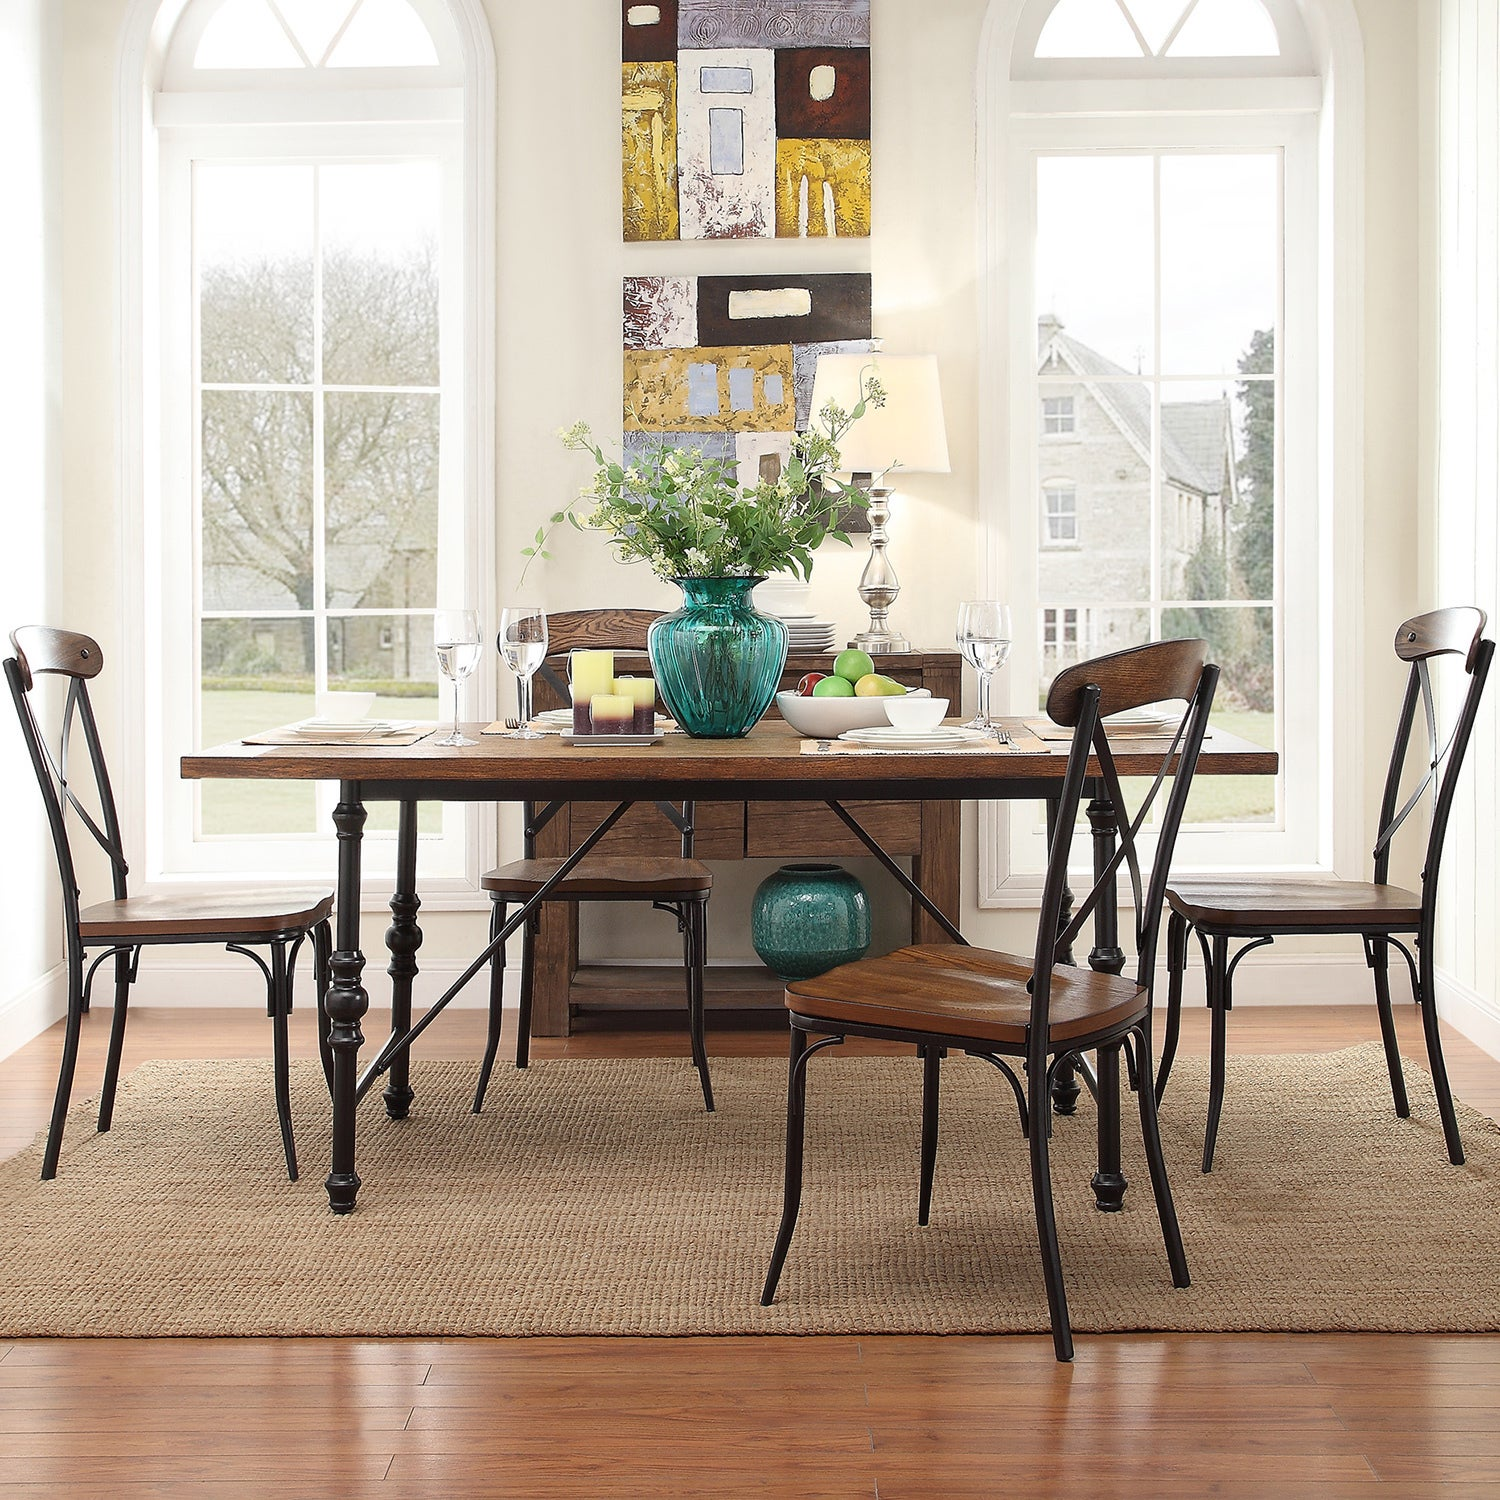 Nelson Industrial Modern Metal Dining Table By INSPIRE Q Classic   Free  Shipping Today   Overstock.com   16558379